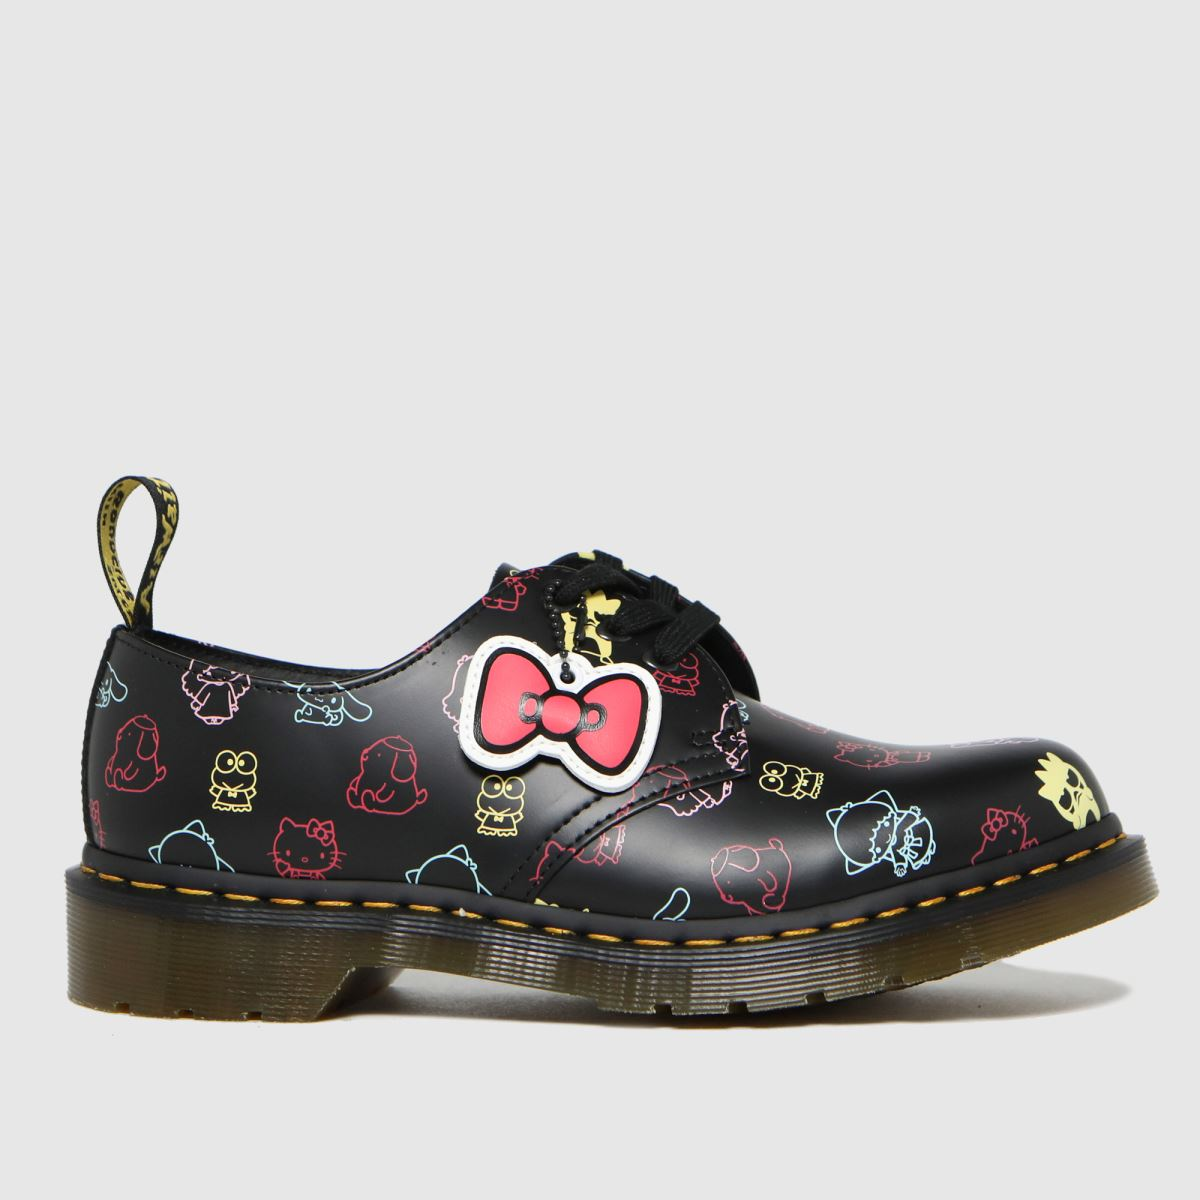 Dr Martens Black 1461 Hello Kitty Flat Shoes